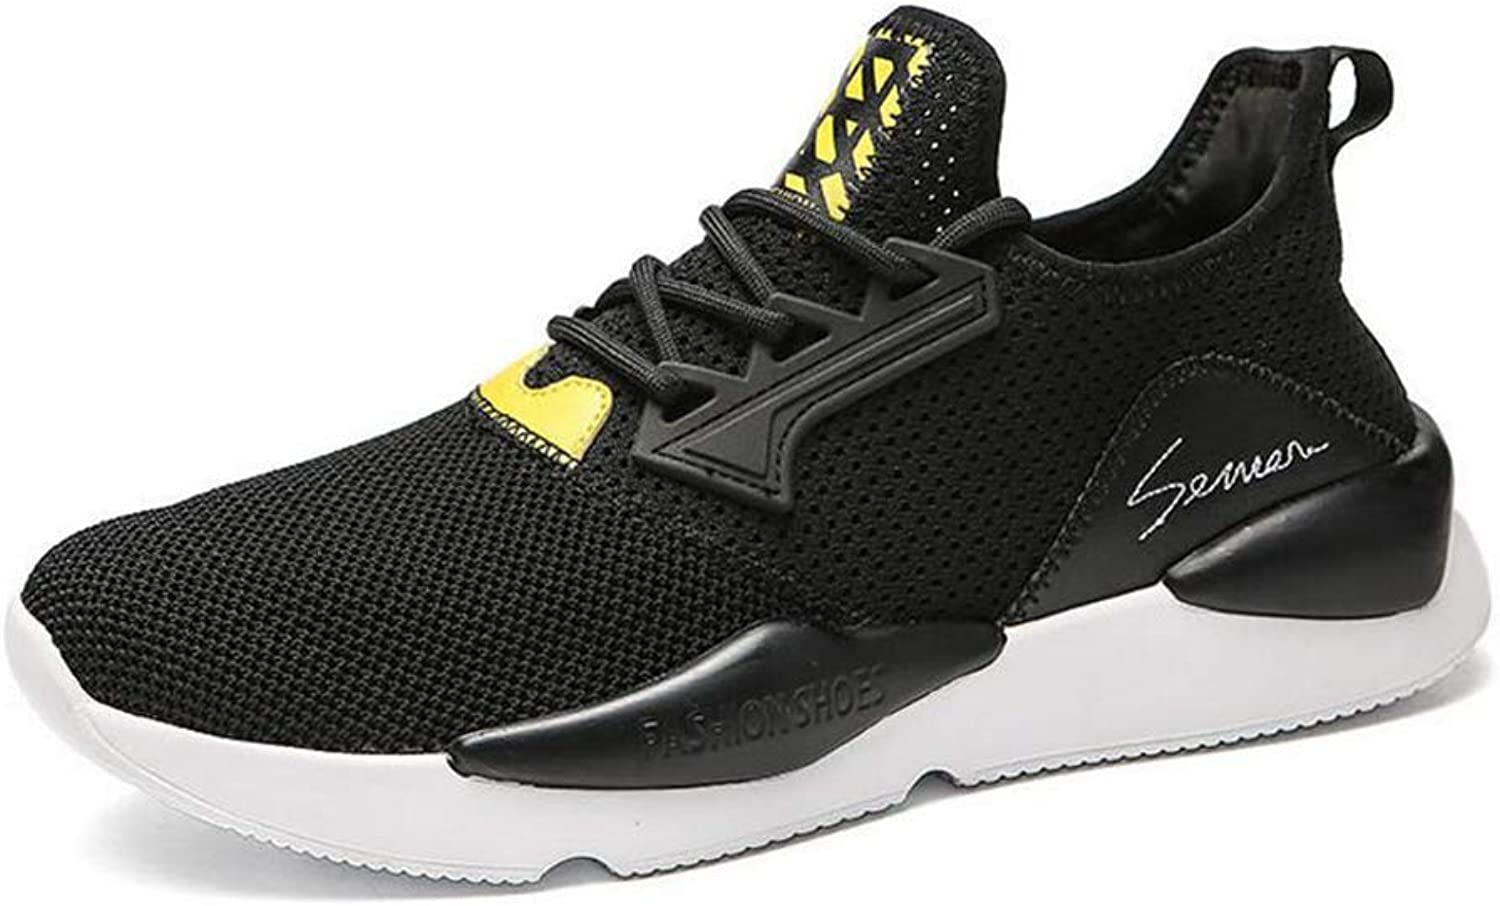 shoes Men's shoes, Summer New Sports shoes Mens Low To Help Fly Woven Mesh Casual Sneakers Students Fashion Wild Non-slip Running shoes outdoor (color   Black, Size   40)